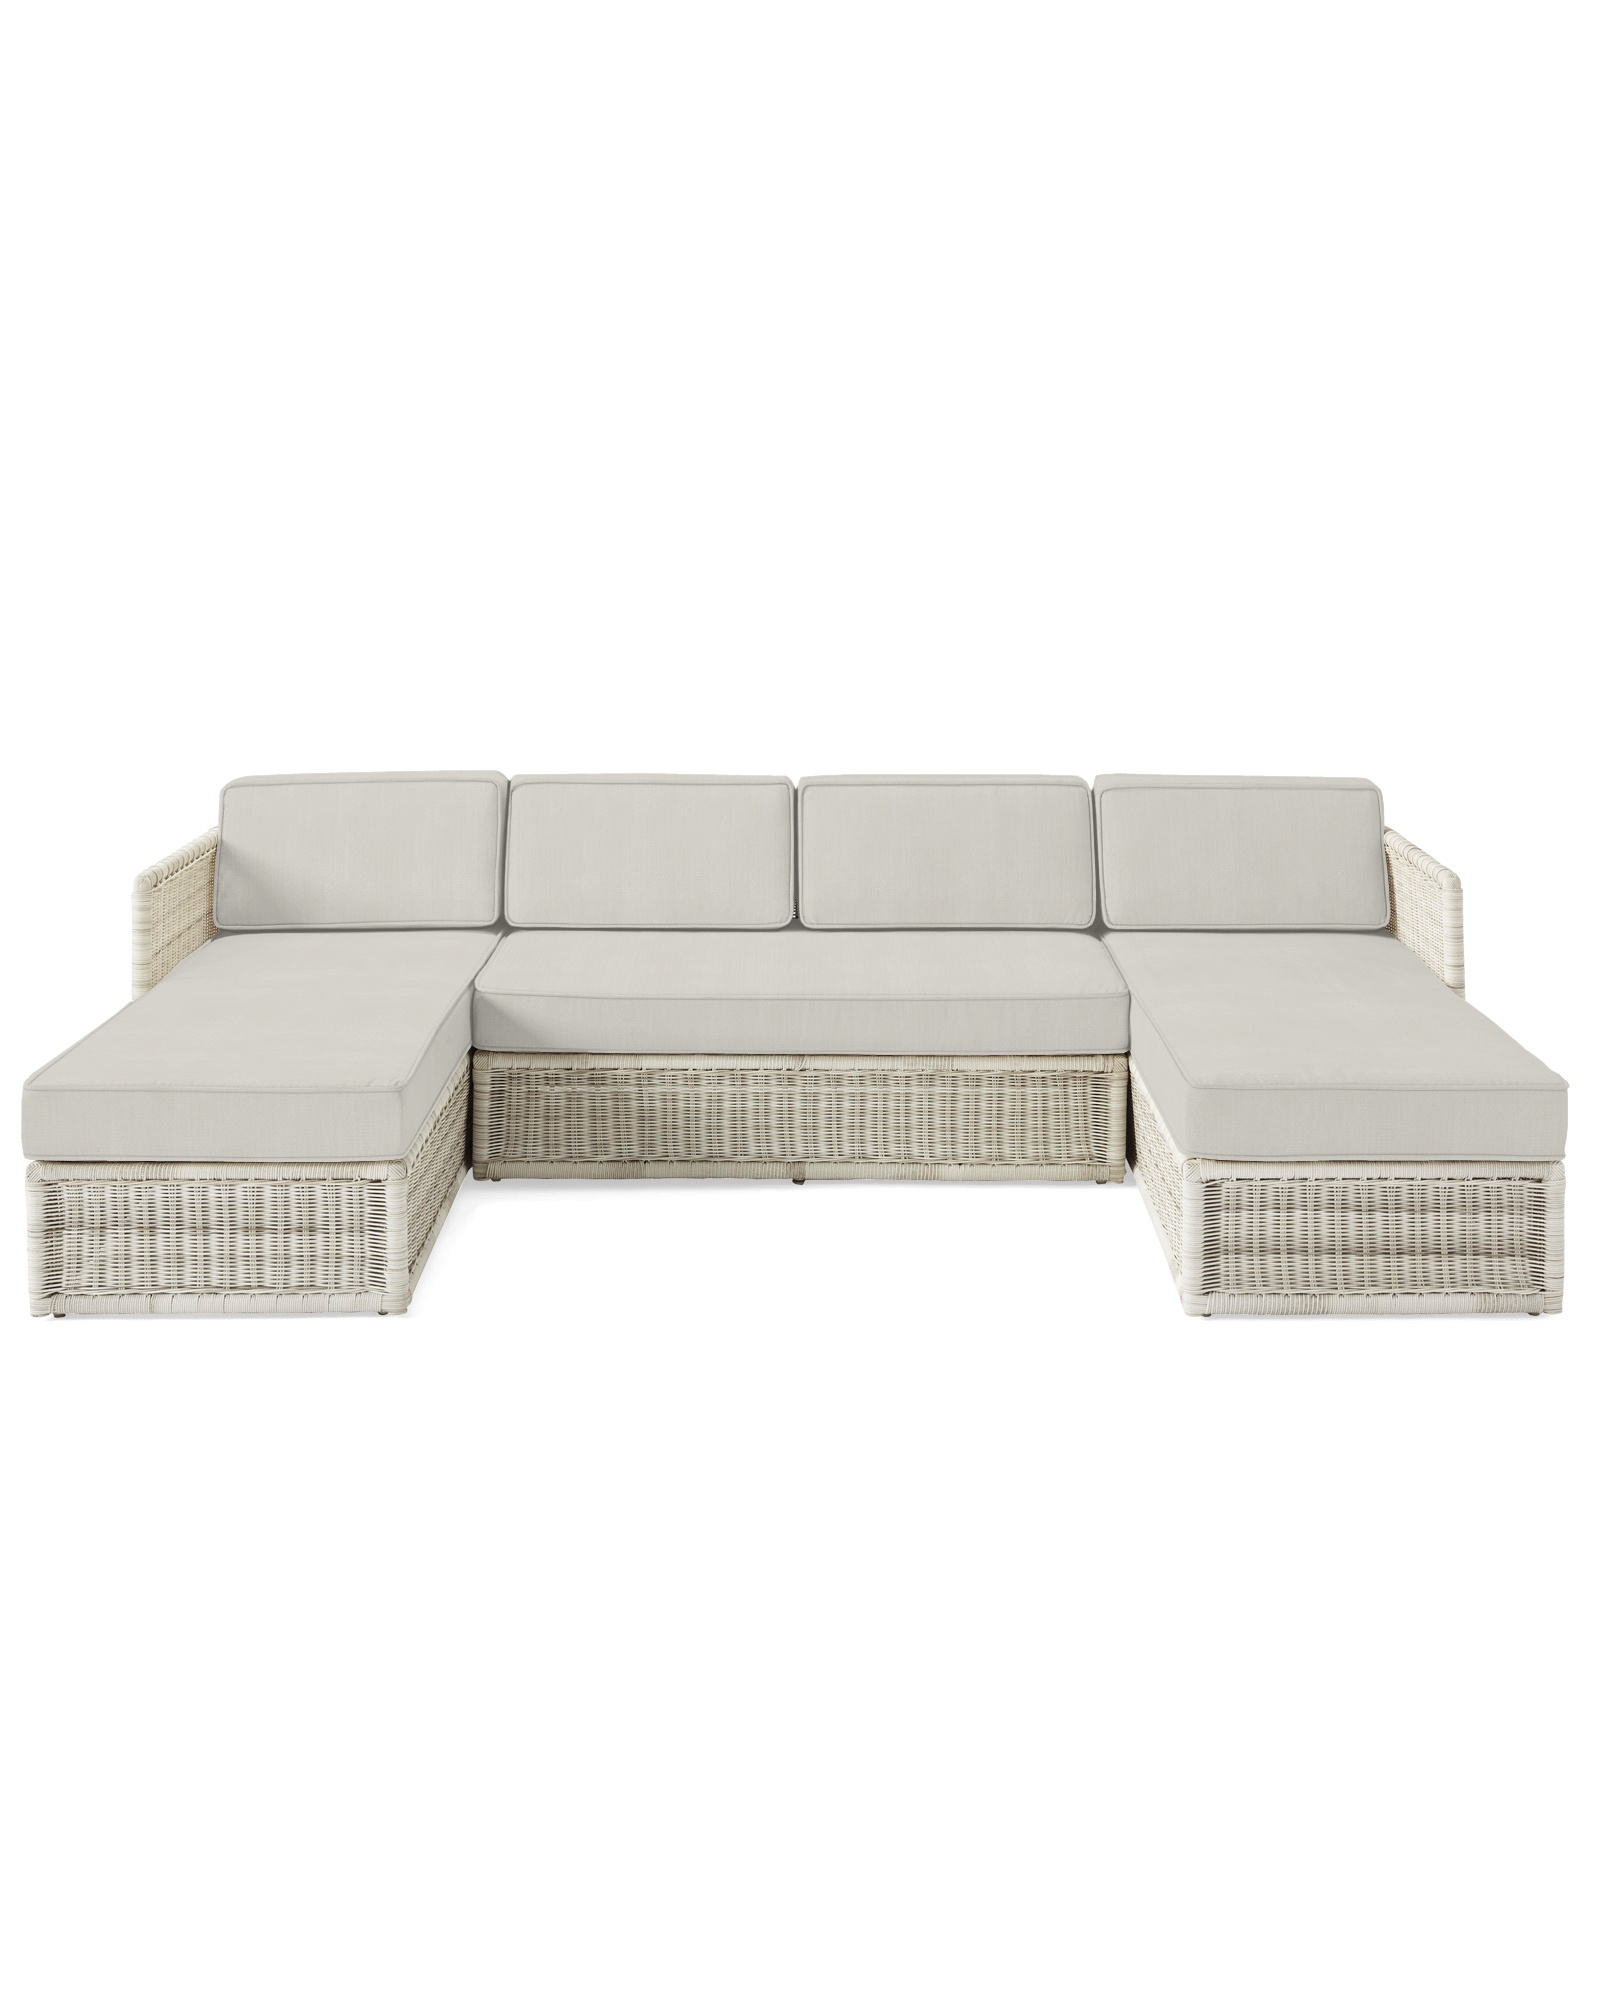 Cushion Cover for Pacifica U-Sectional, Perennials Basketweave Chalk